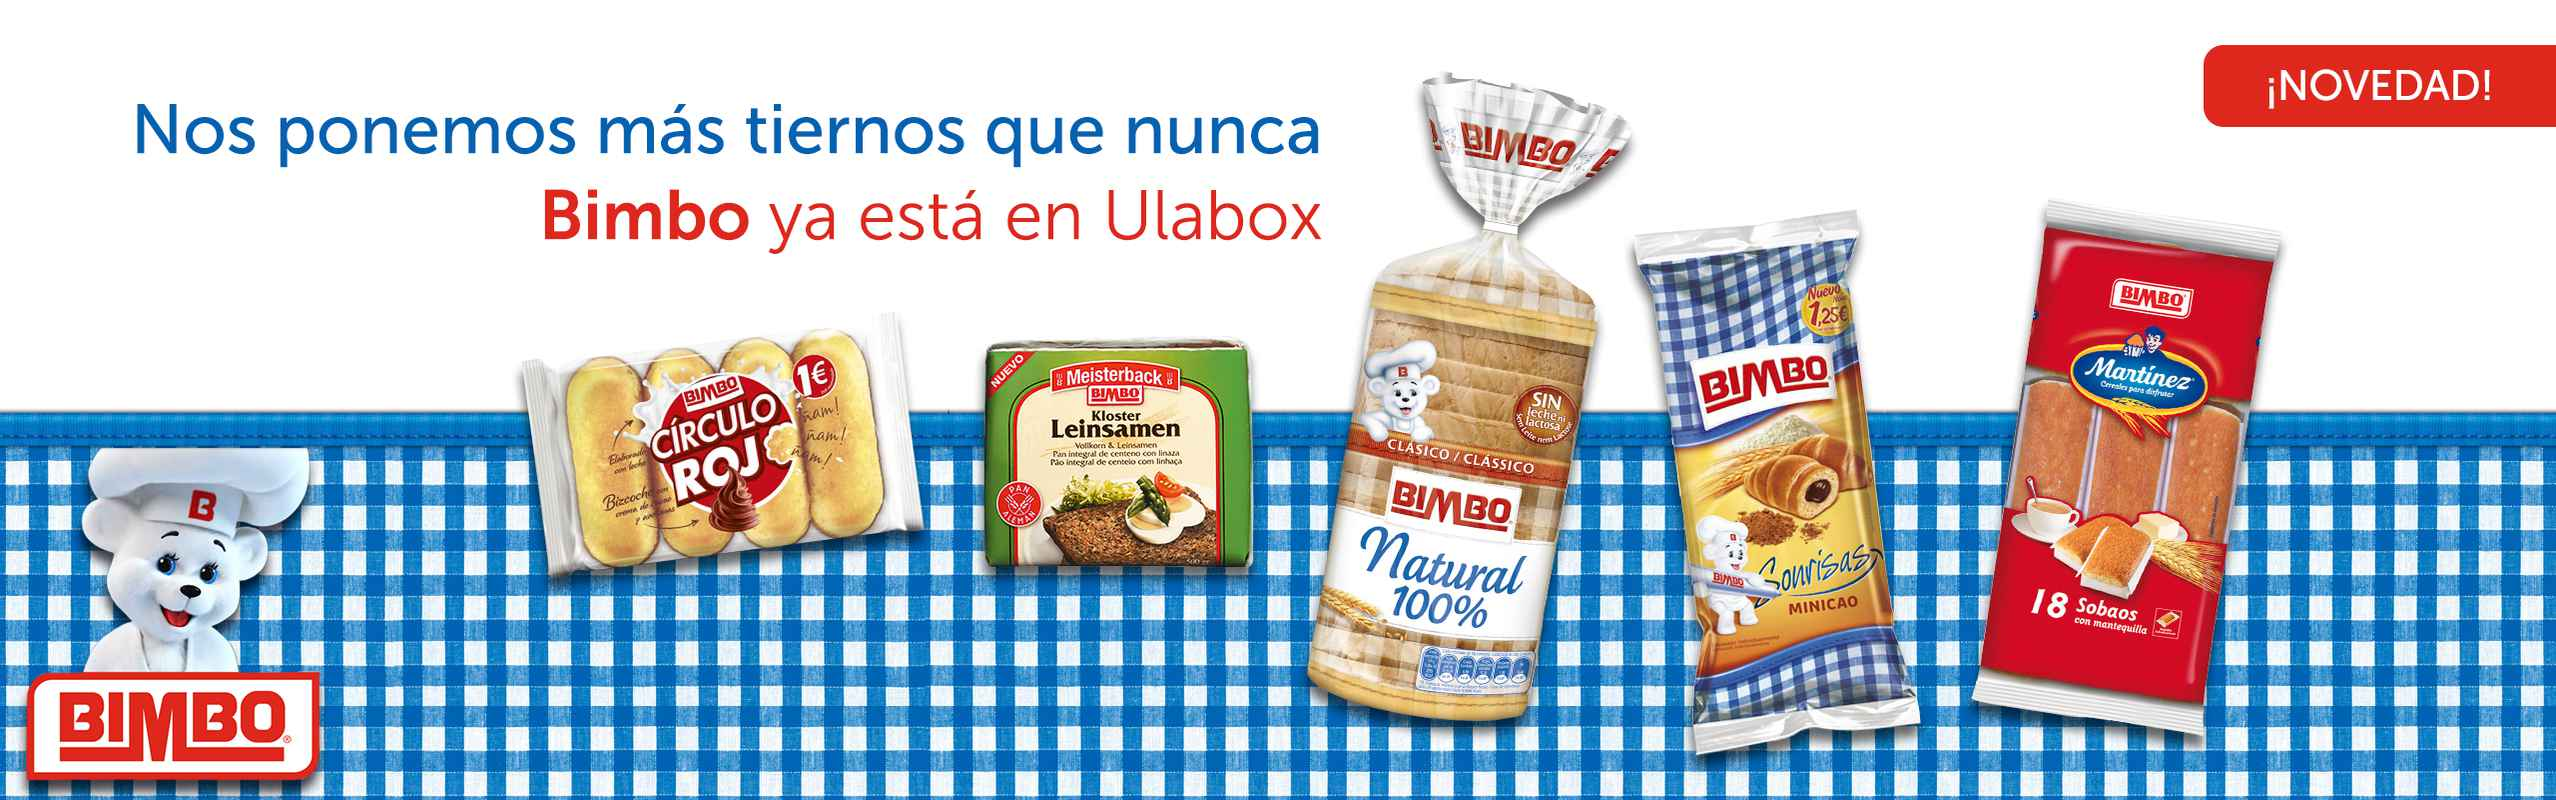 ¡Bimbo en Ulabox!